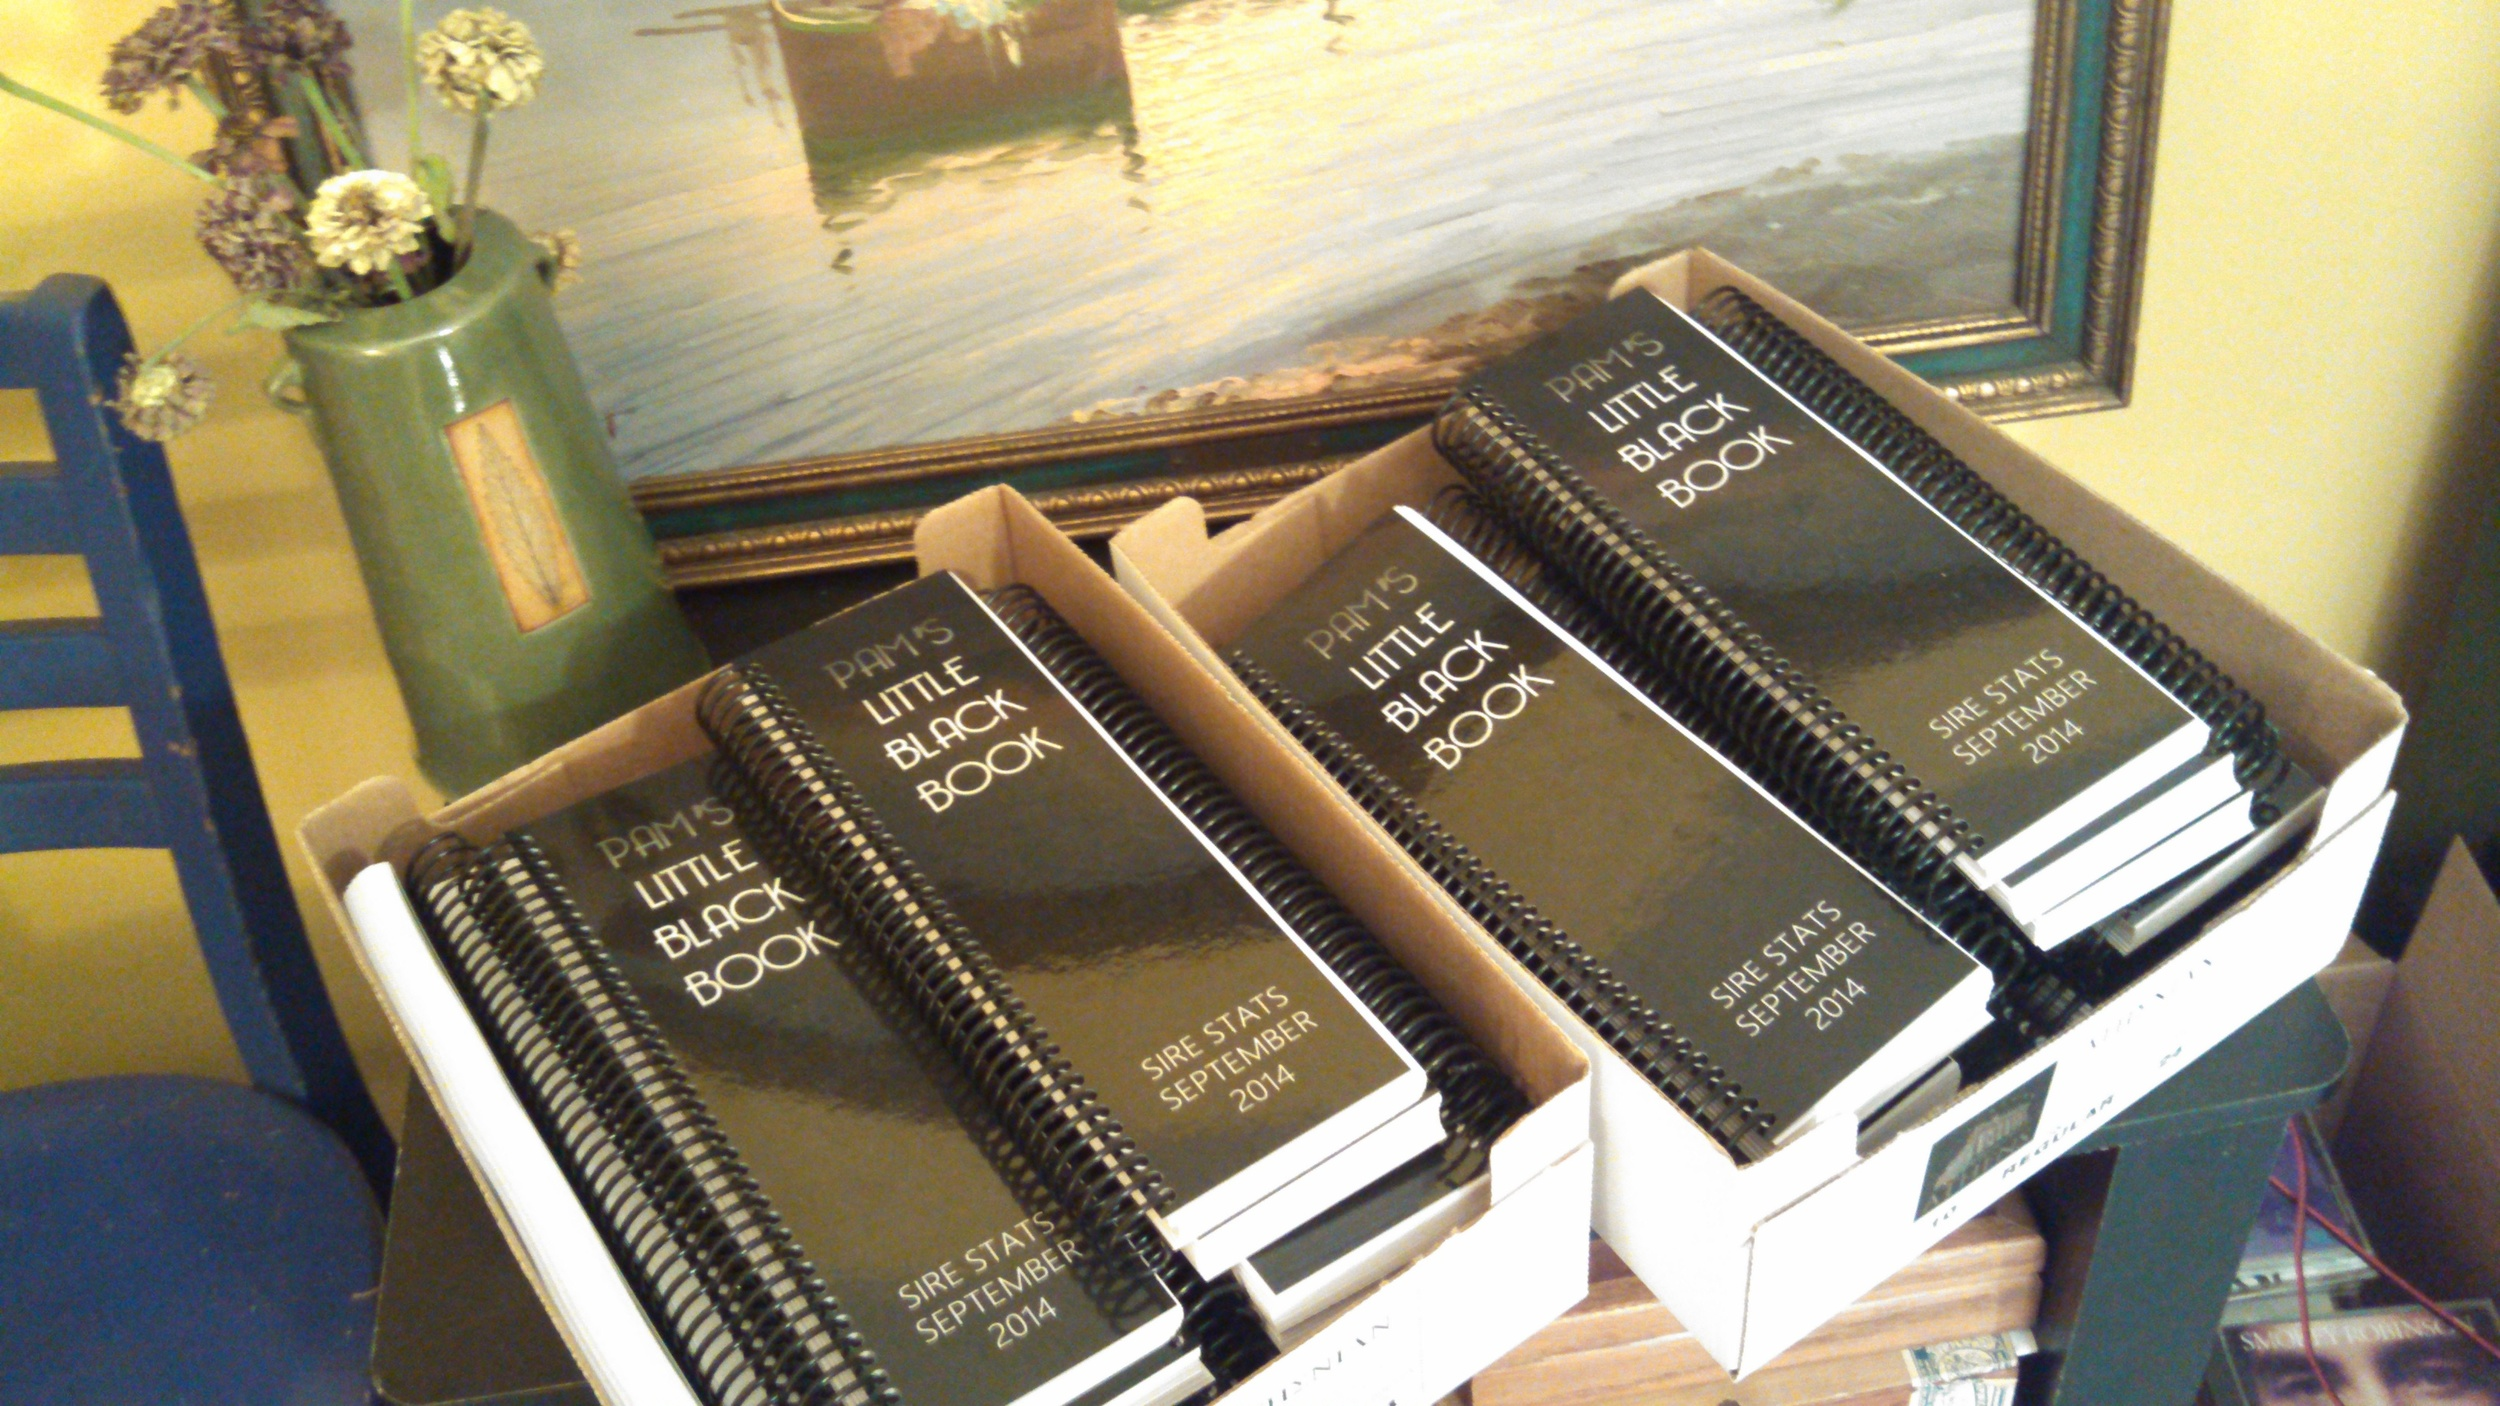 PAM'S LITTLE BLACK BOOK - THIRD YEAR OF PRODUCTION